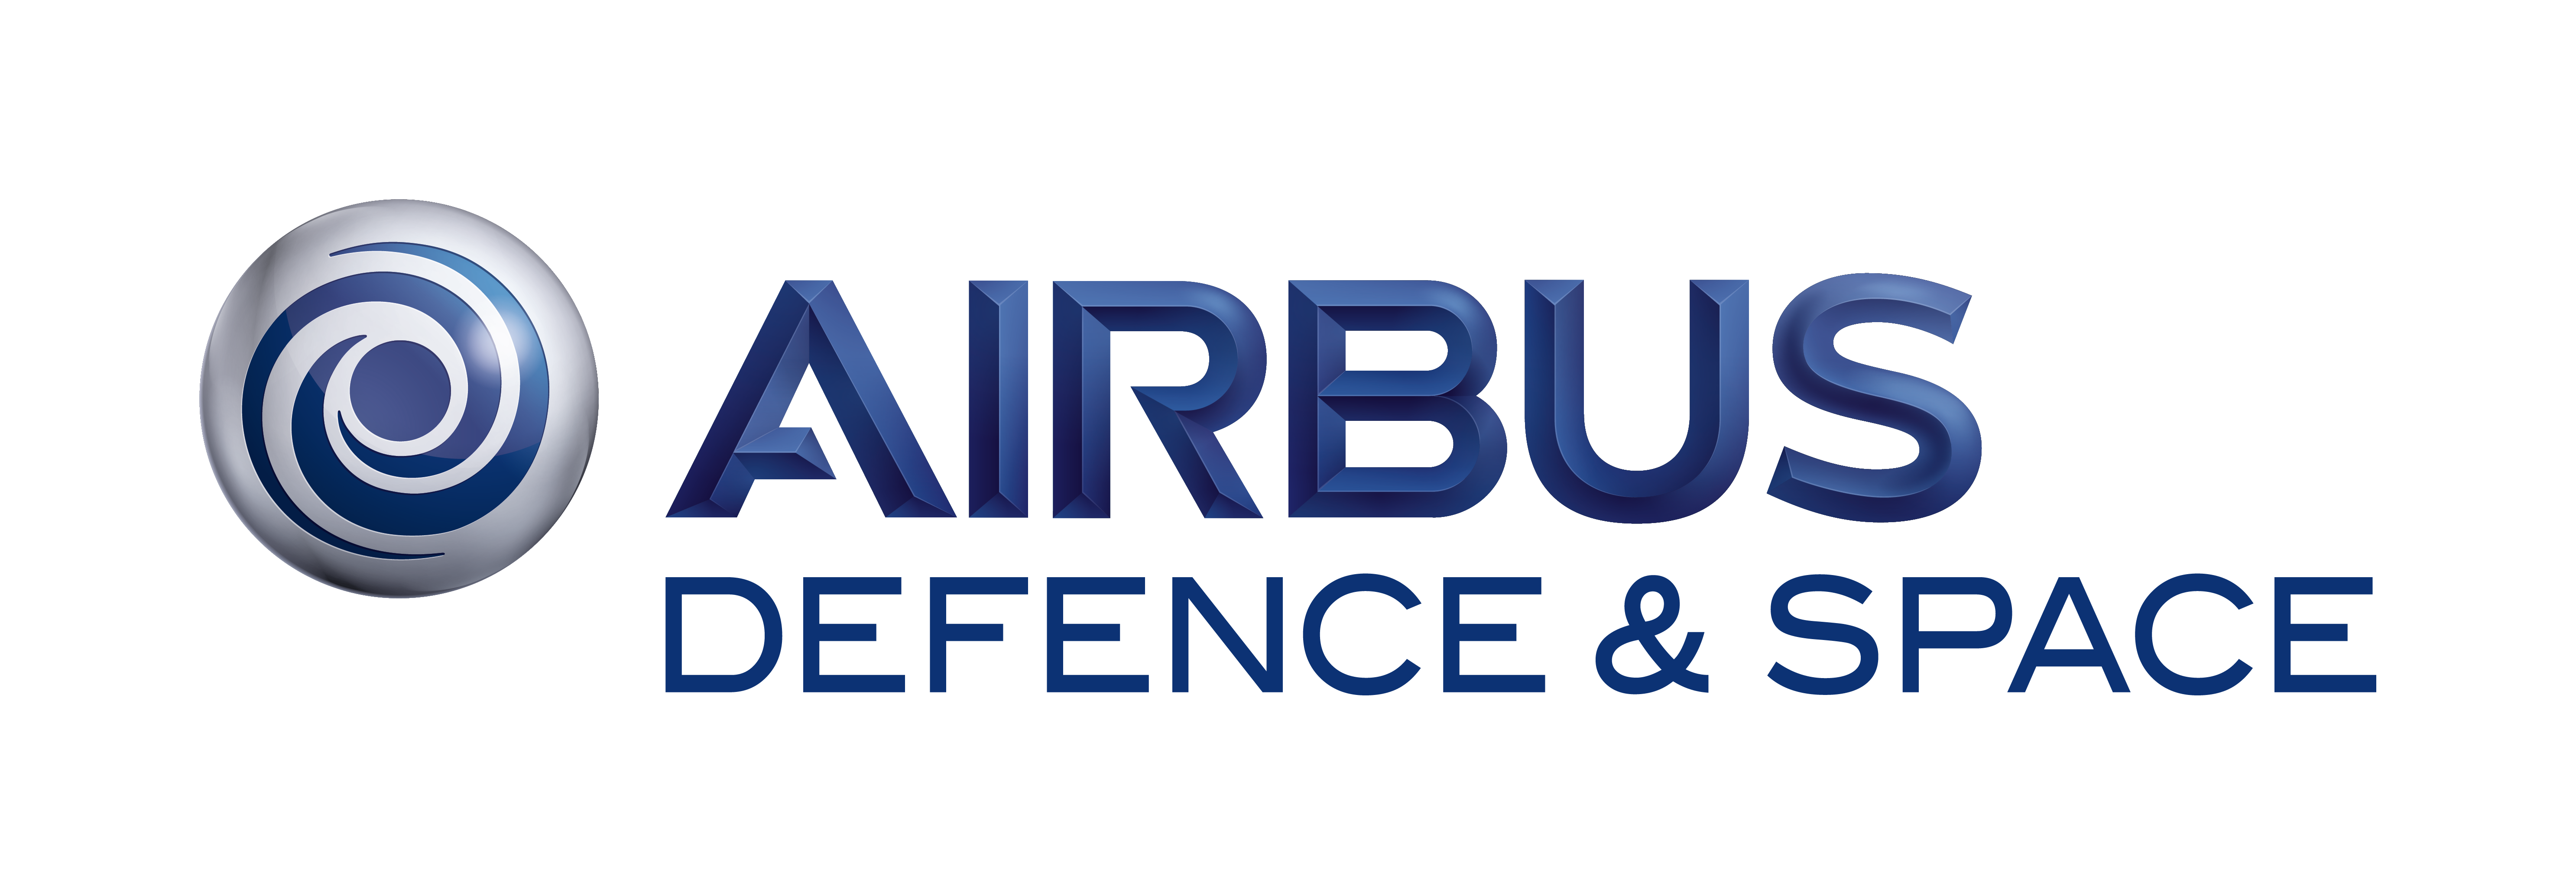 Airbus Defence and Space dein Ausbildungsbetrieb | azubis.de Airbus Logo Png - Airbus PNG